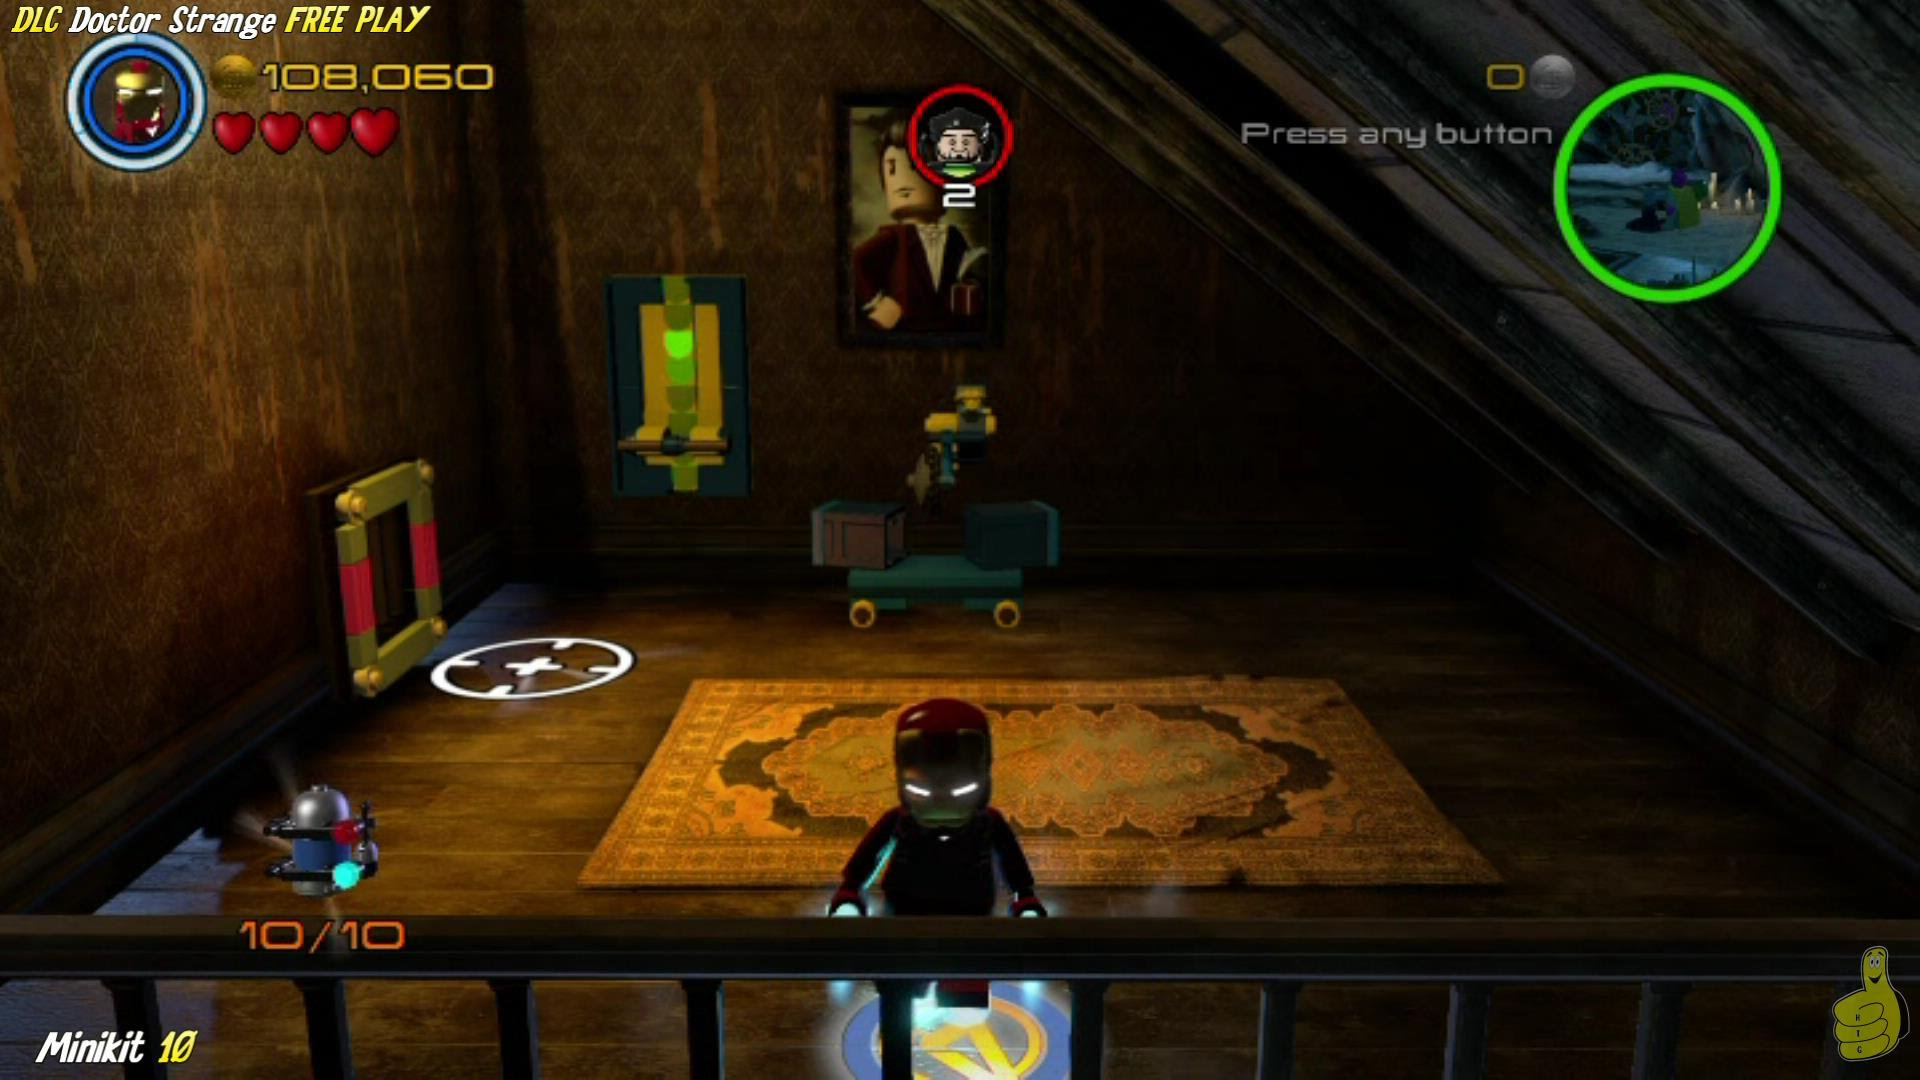 Lego Marvel Avengers: DLC Doctor Strange FREE PLAY (All Collectibles) – HTG